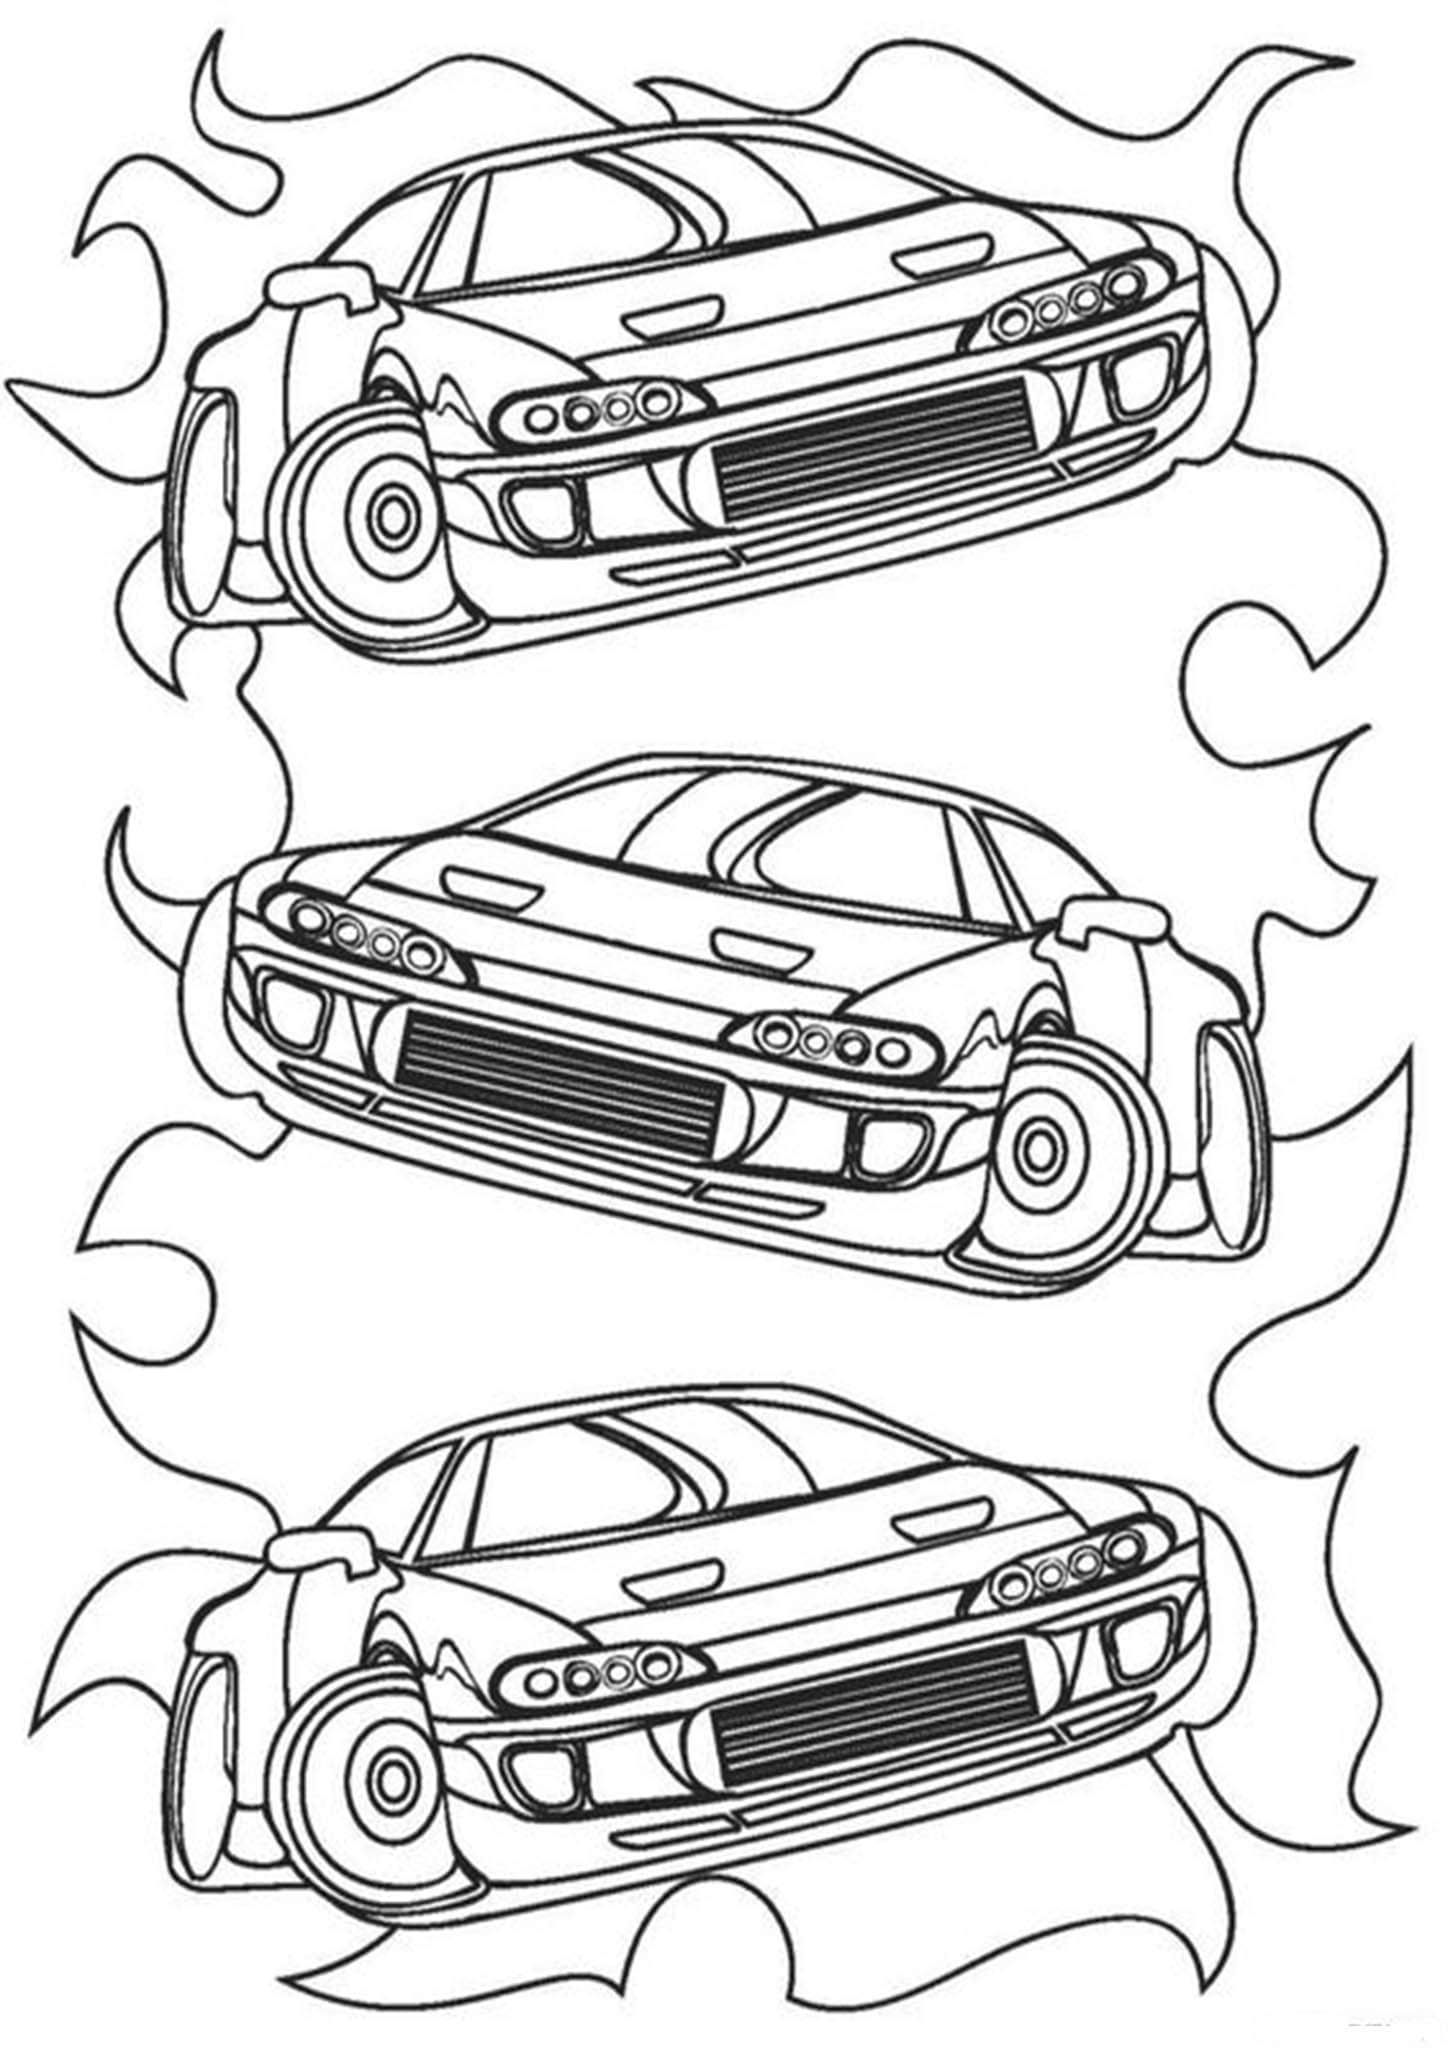 Free Easy To Print Race Car Coloring Pages Cars Coloring Pages Race Car Coloring Pages Truck Coloring Pages